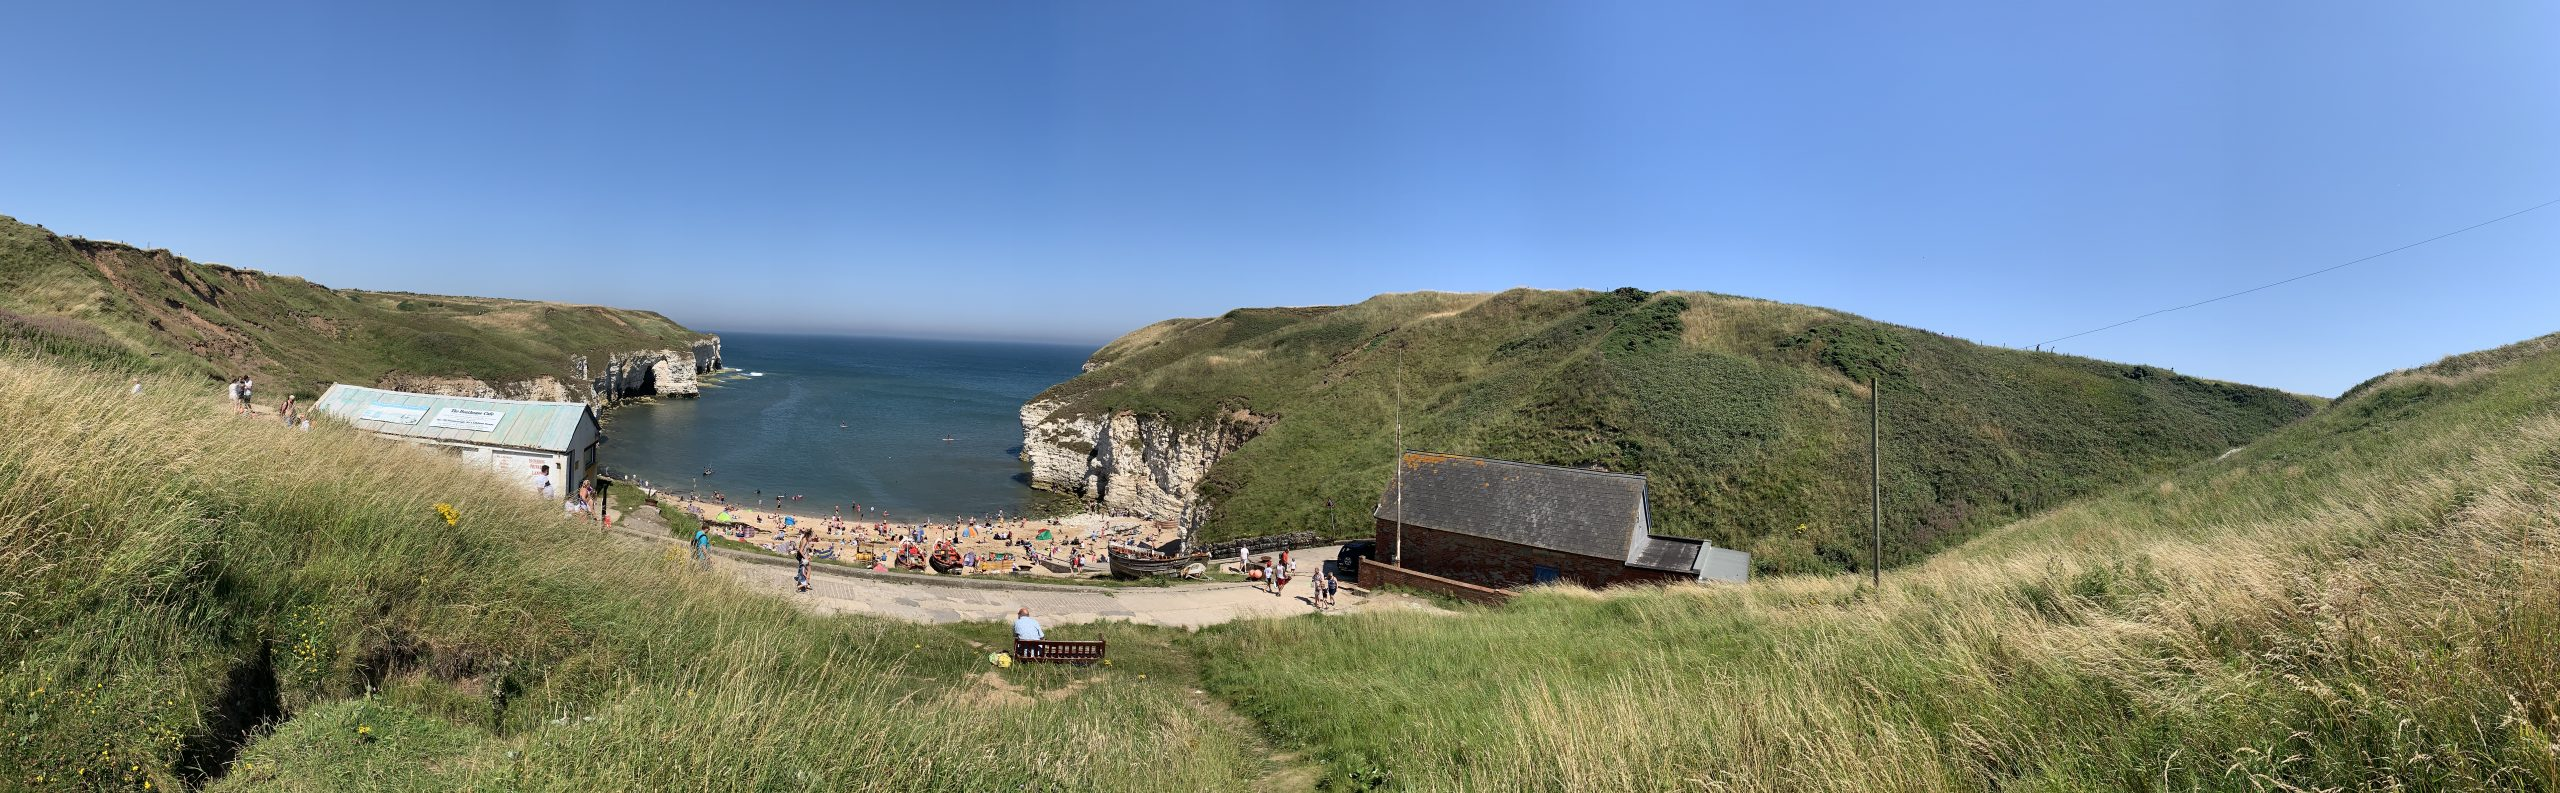 Flamborough Cliffs showing beach and sea in Yorkshire